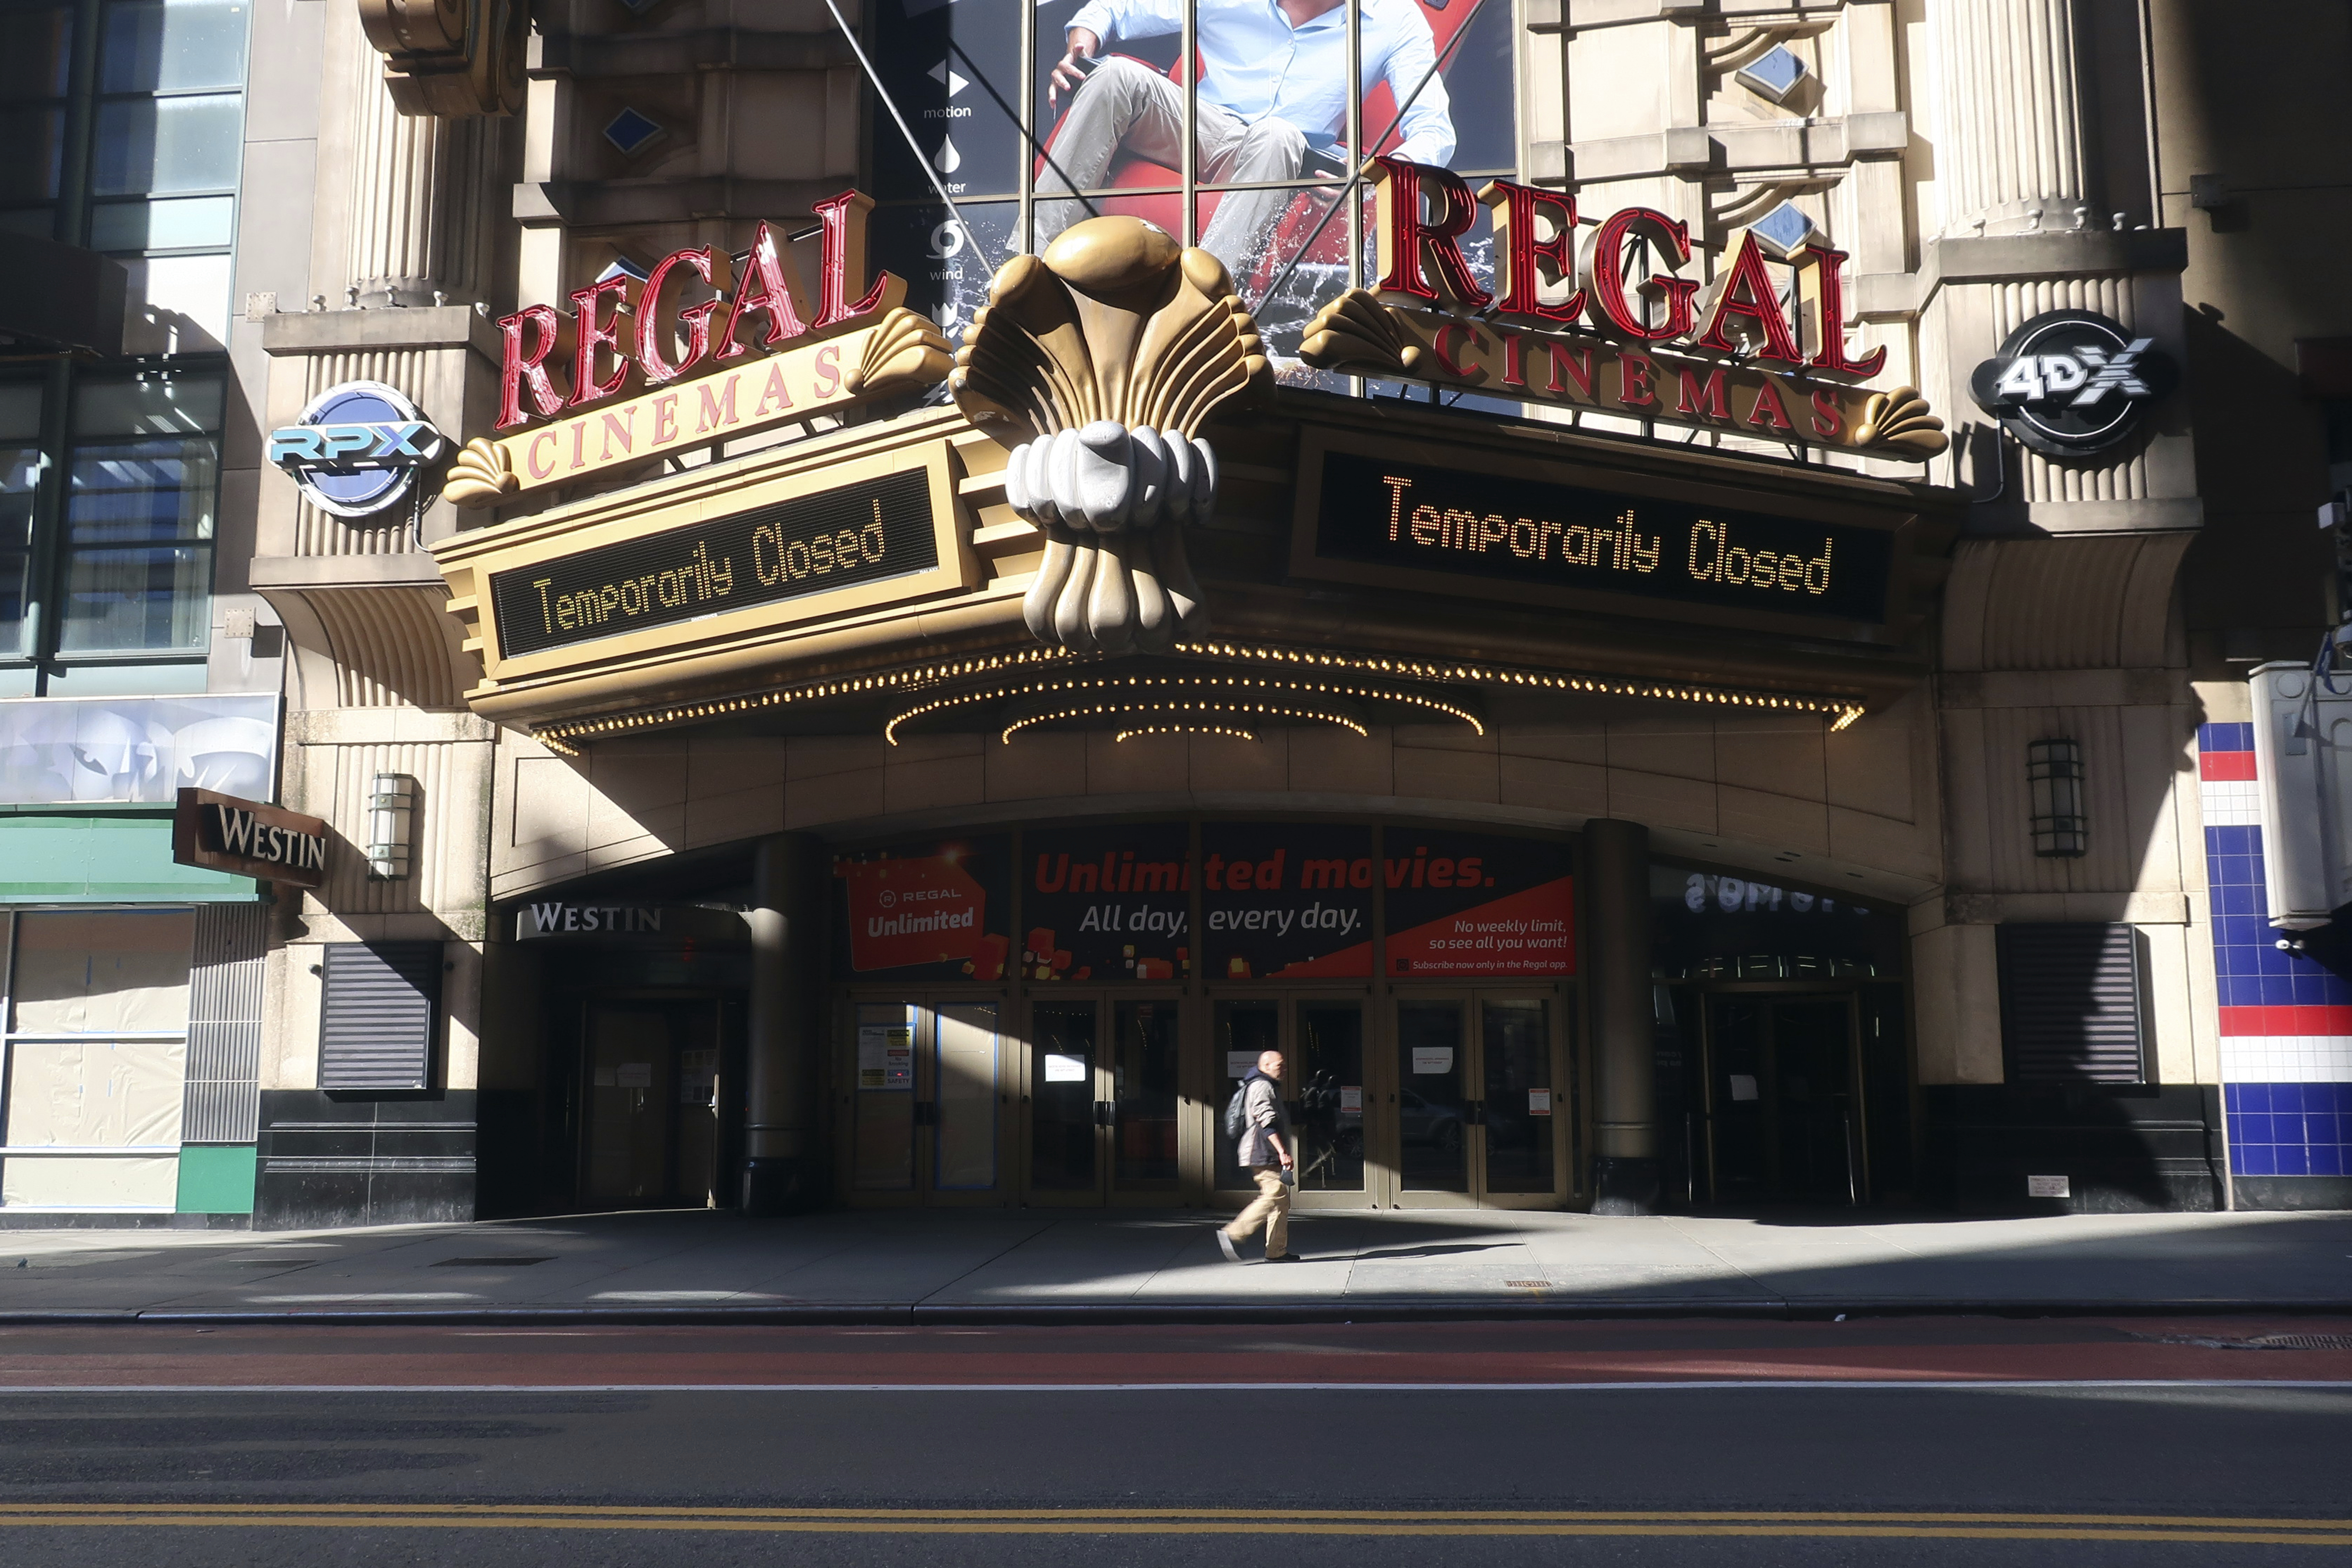 A Regal Cinemas movie theater is closed during the coronavirus pandemic on Tuesday, May 5, 2020, in New York. (AP Photo/Ted Shaffrey)